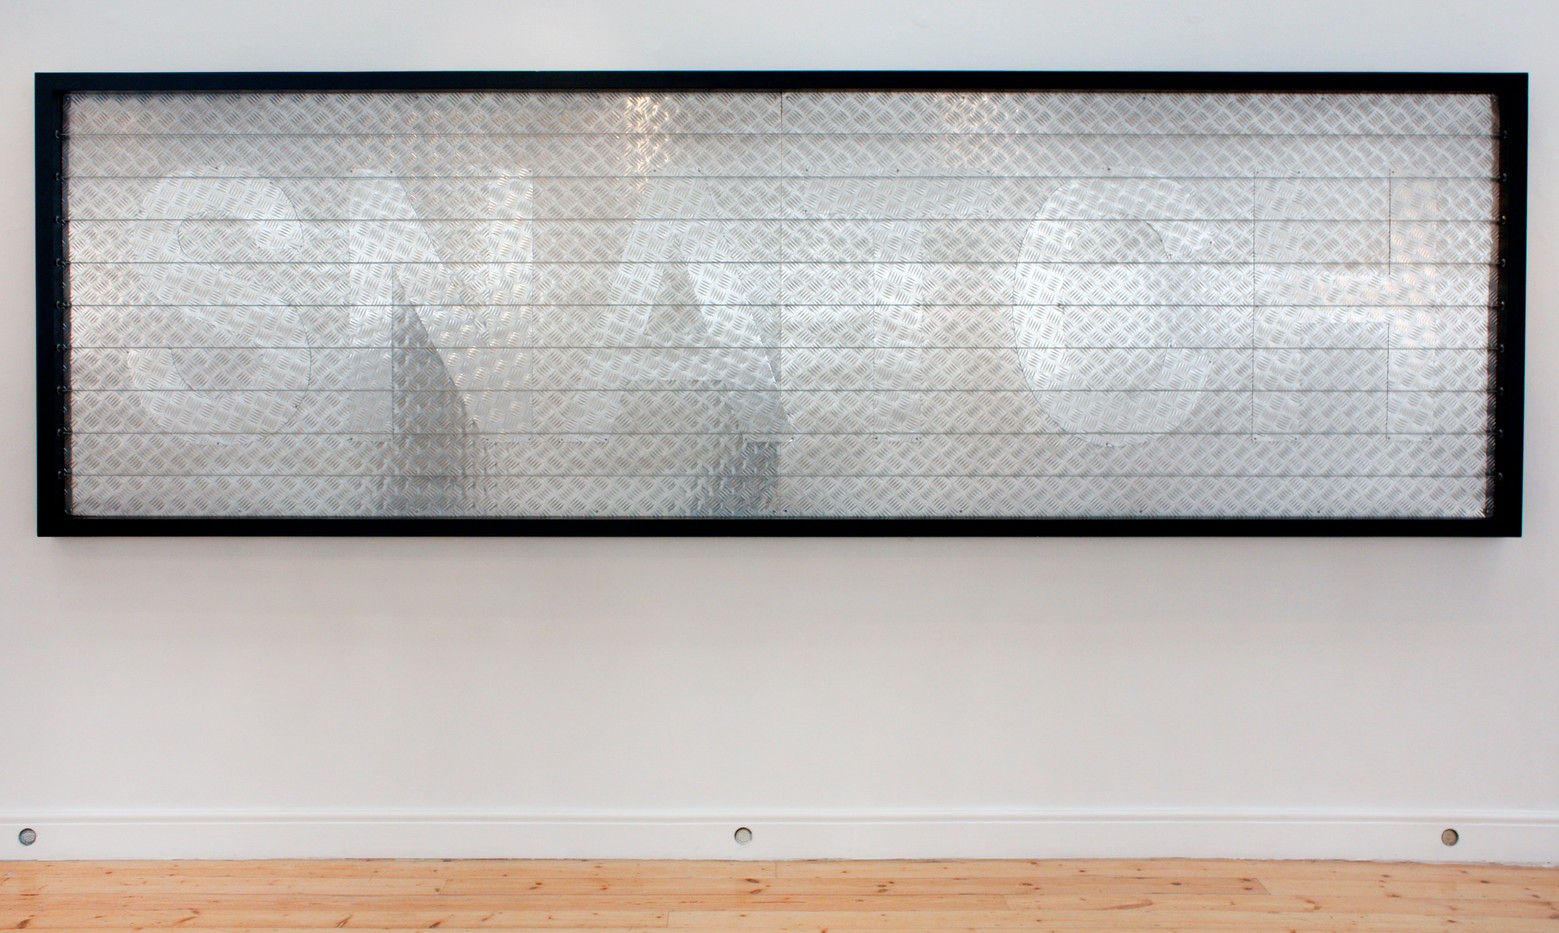 Willem Boshoff | Snatch | 2010 | Steel and Lights | 130 x 410 x 10 cm